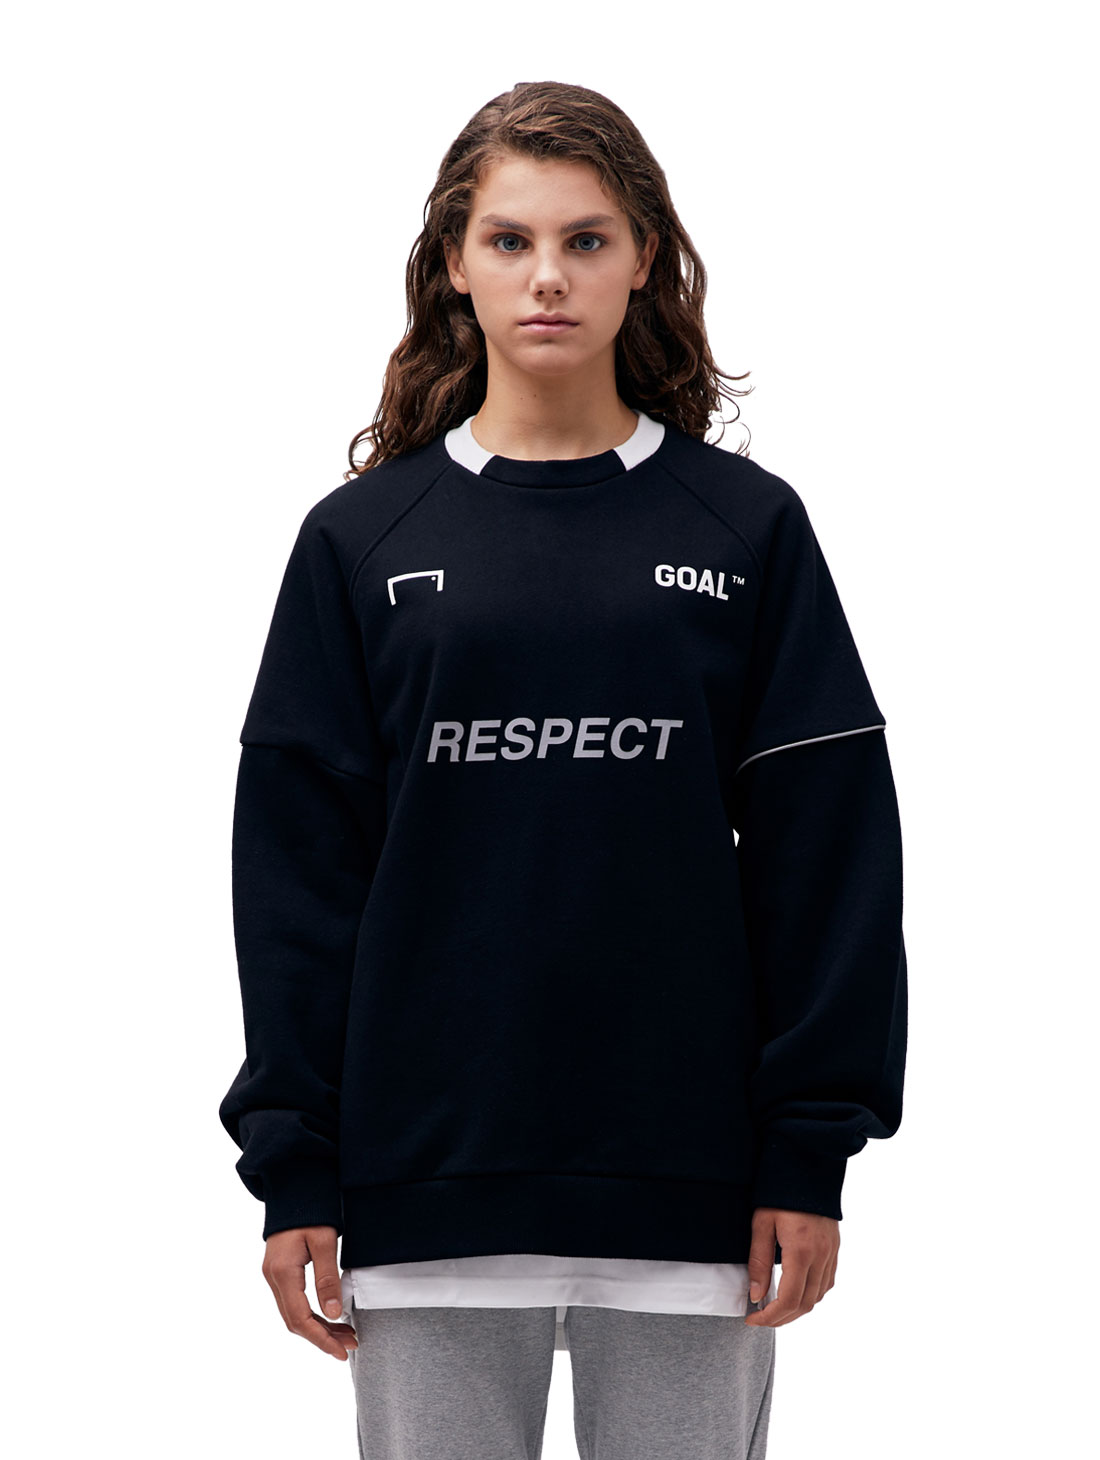 GOALSTUDIO RESPECT SWEATSHIRT - BLACK